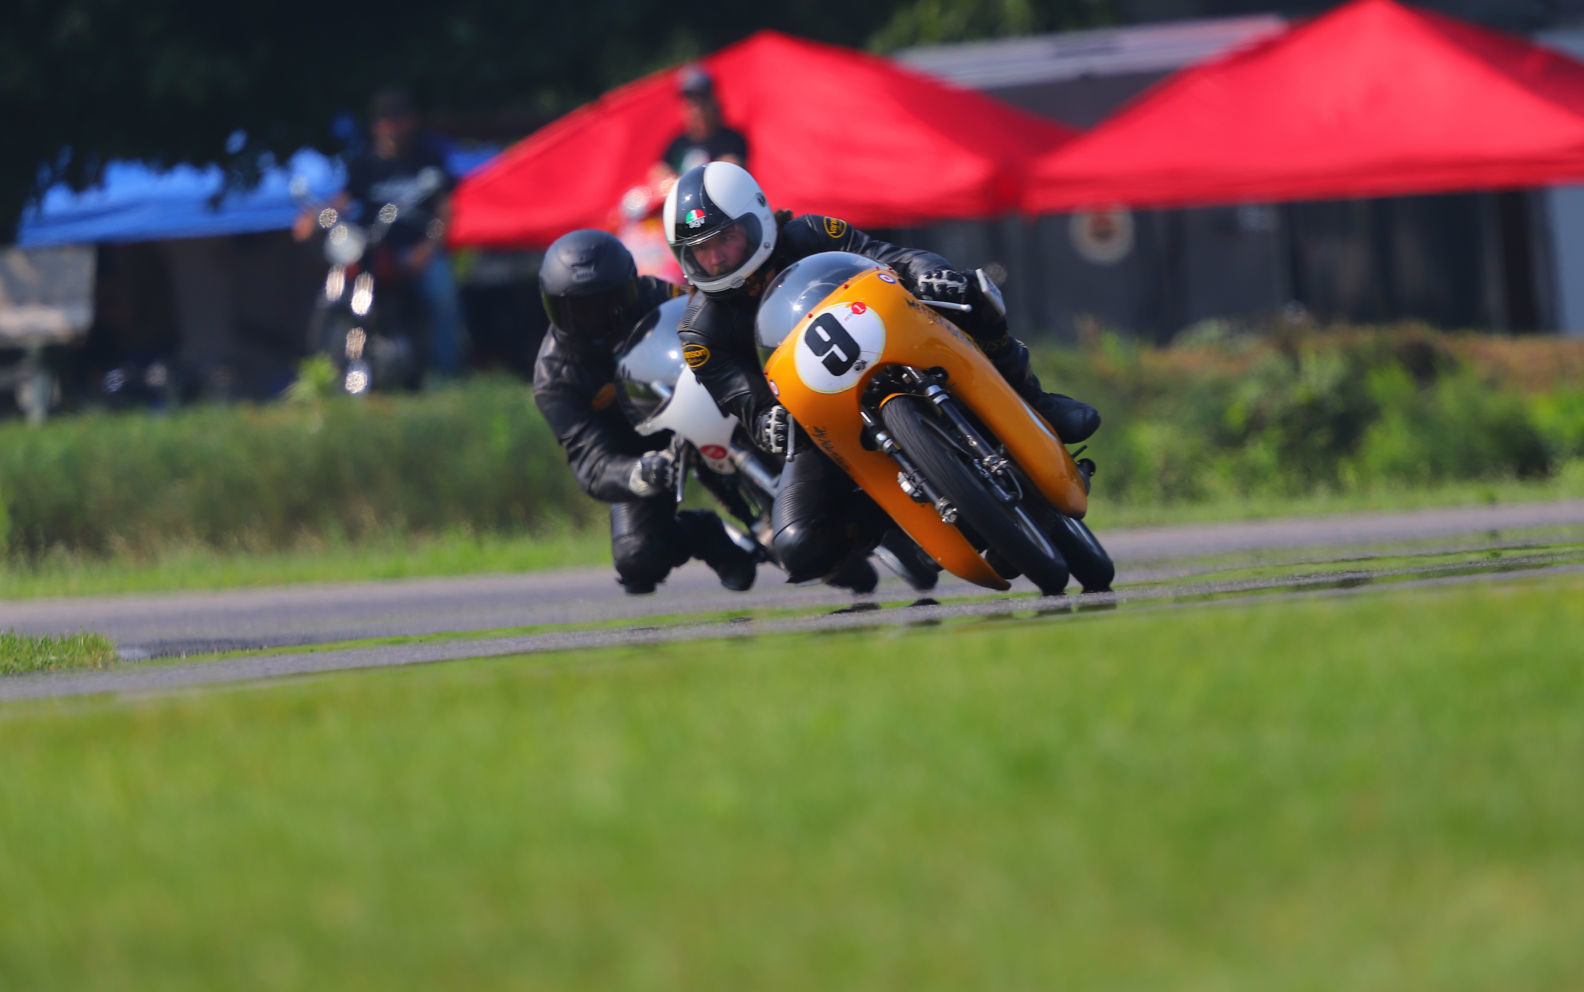 Colton Roberts (9) during the Formula 125 race at Gingerman Raceway. Photo by etechphoto.com, courtesy AHRMA.